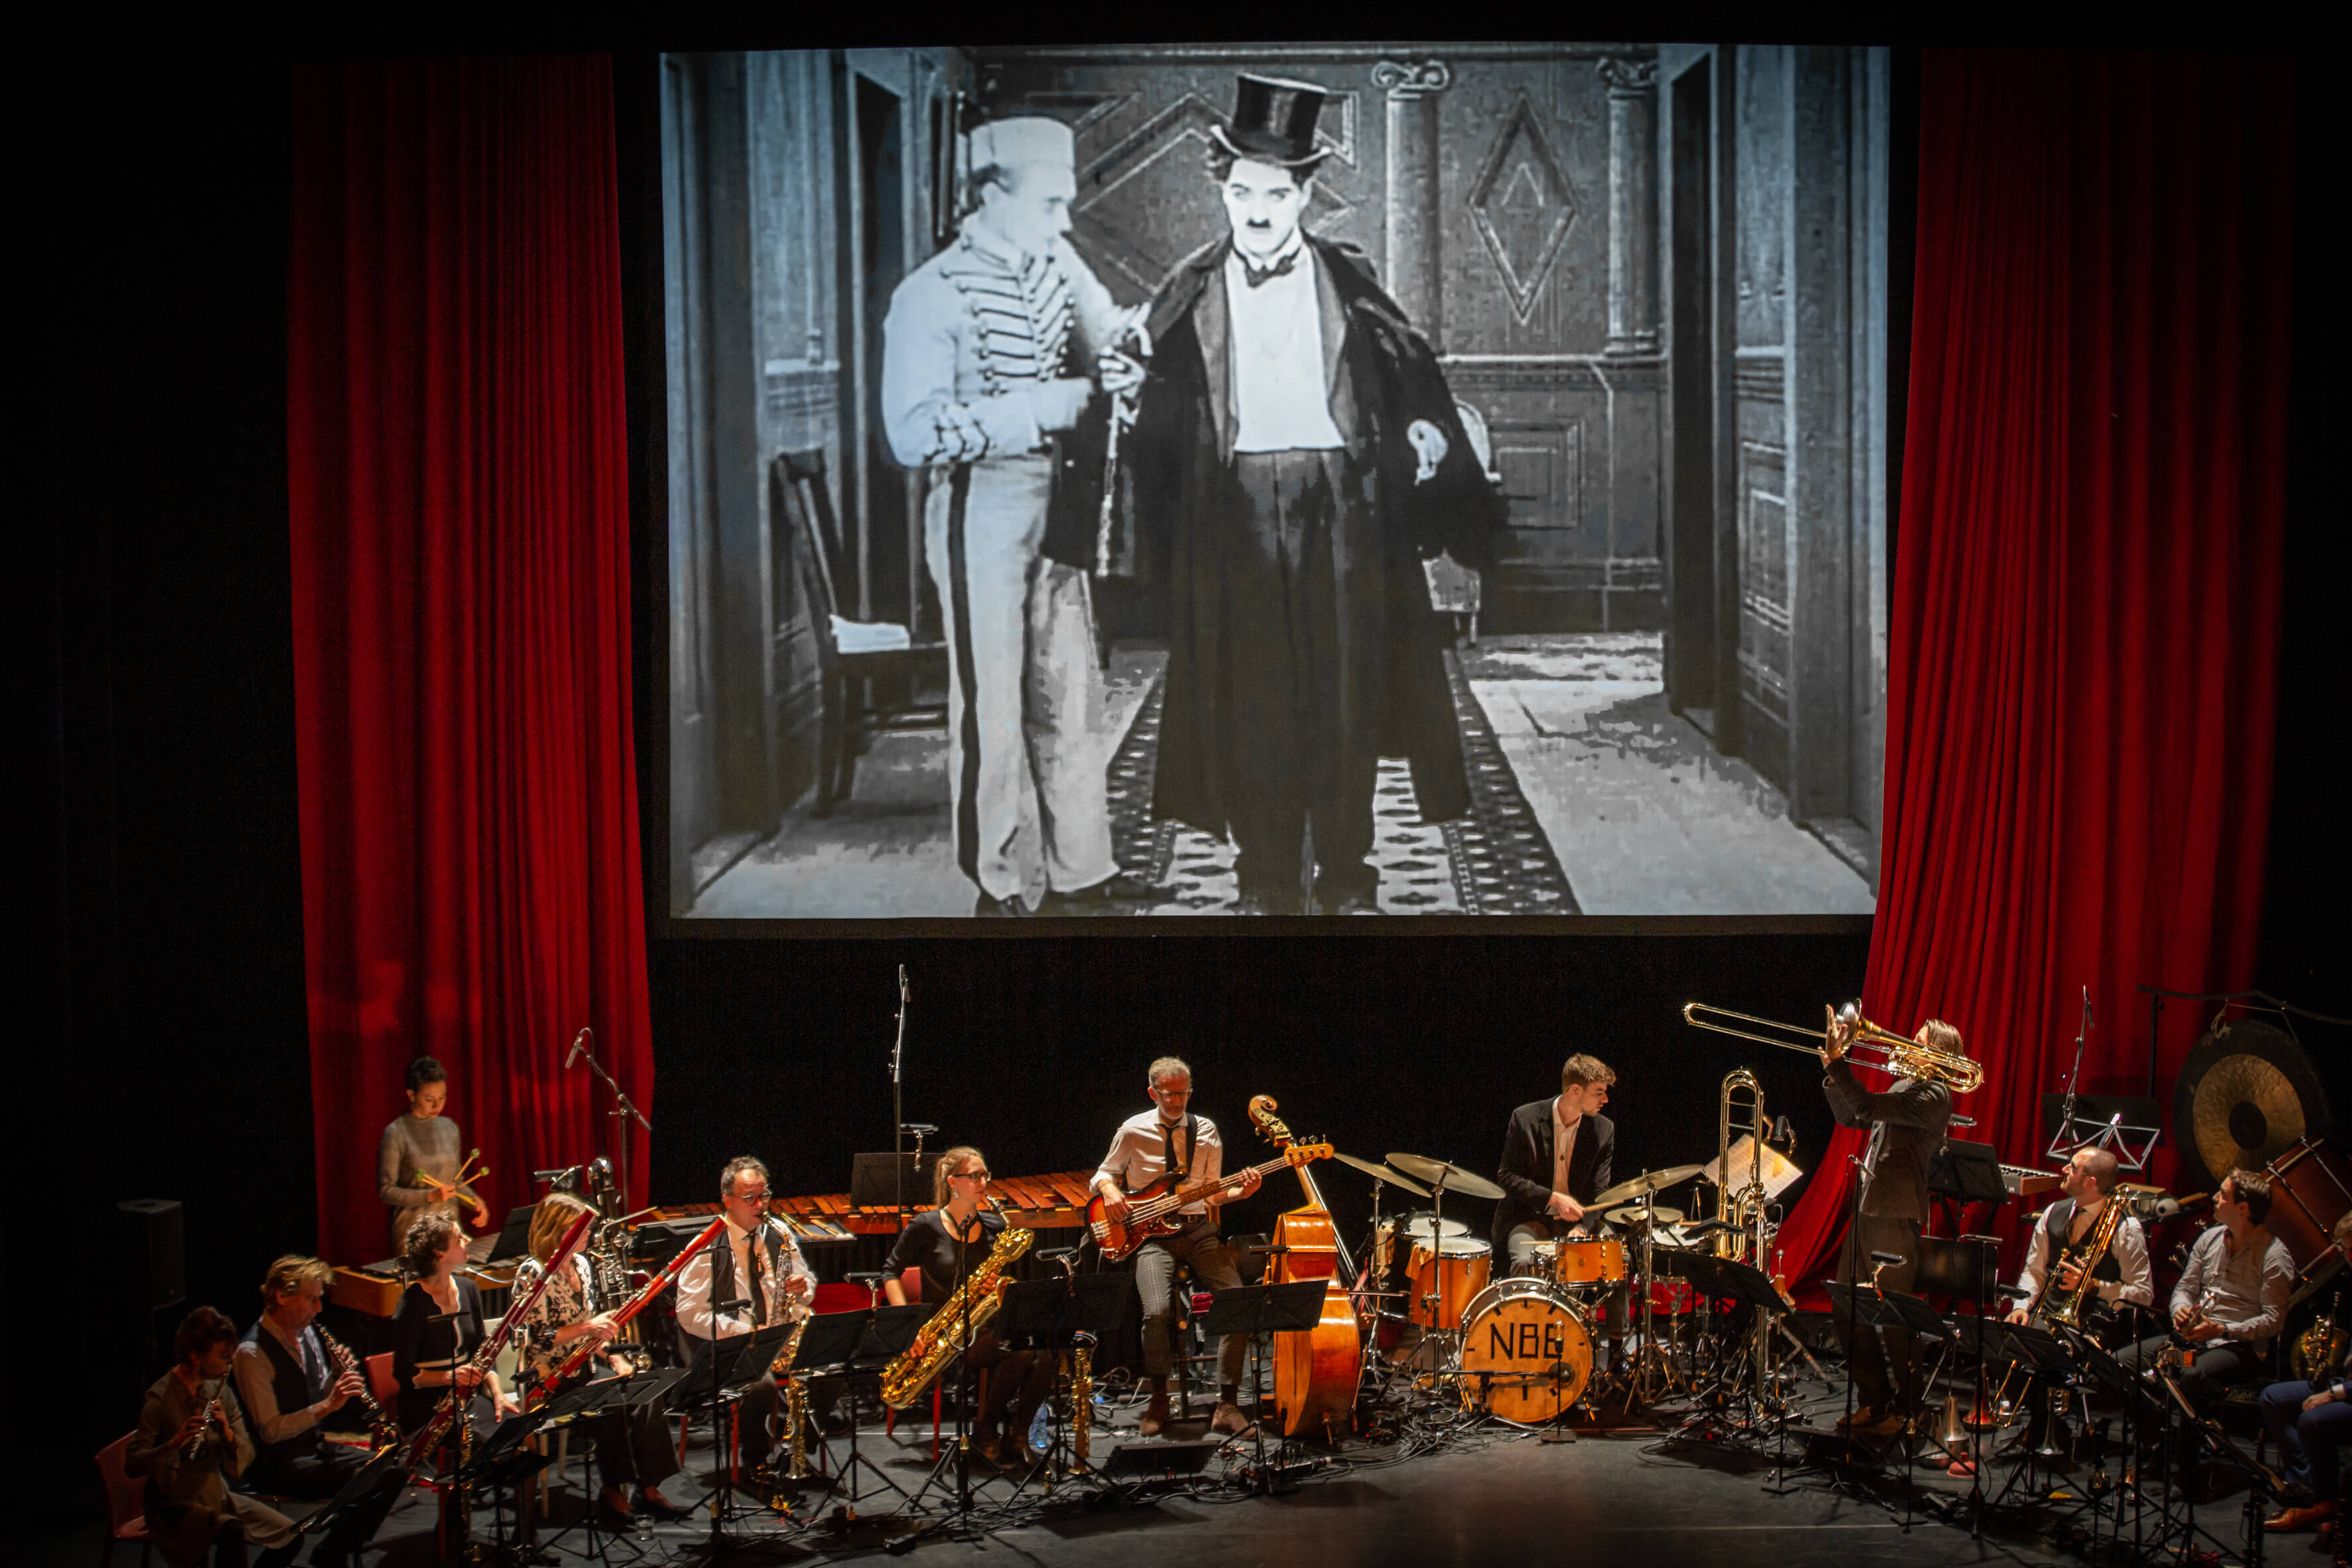 GEANNULEERD - Nederlands Blazers Ensemble speelt The Unknown Chaplin in Theater Rotterdam